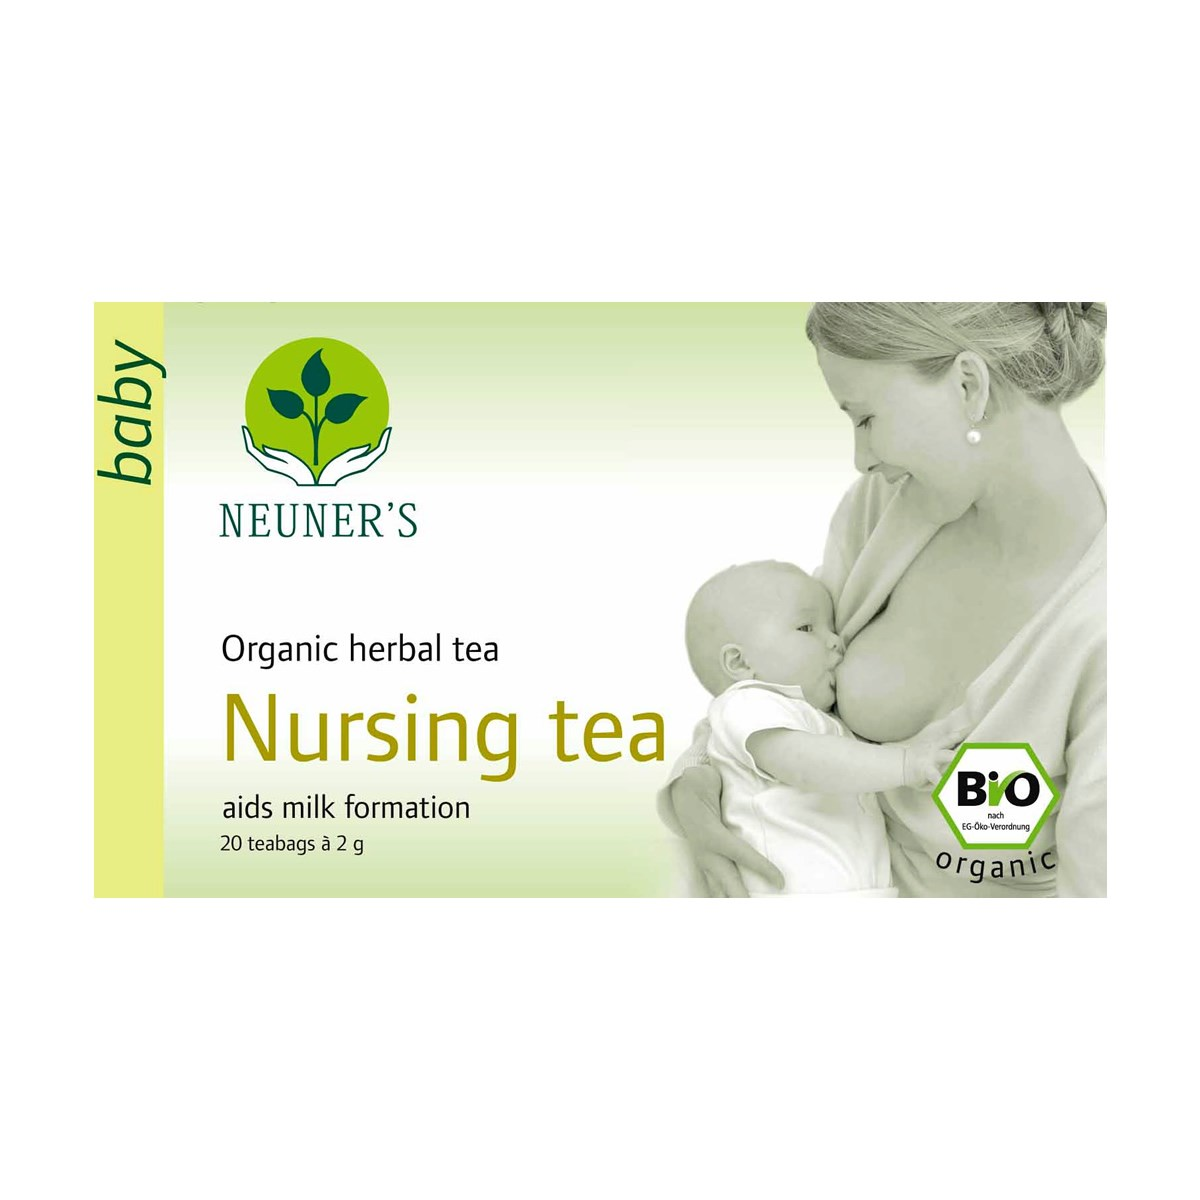 Neuner's Organic Herbal Nursing Tea